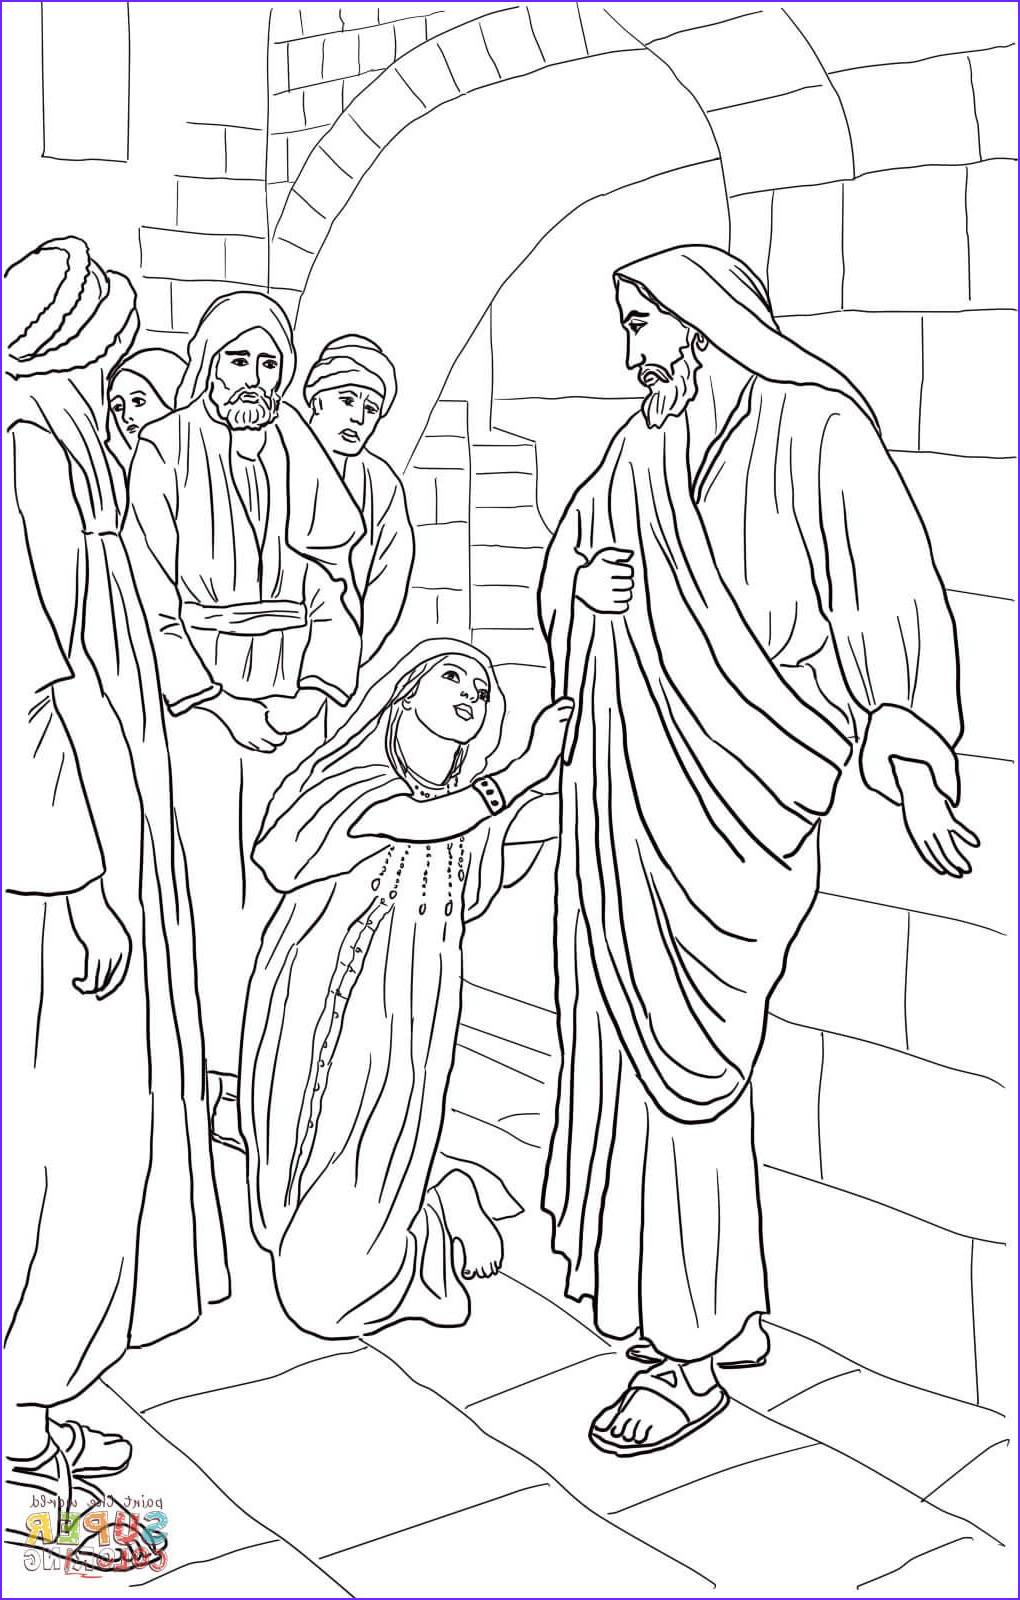 Free Bible Story Coloring Pages Inspirational Stock Jesus Heals Canaanite Woman S Daughter